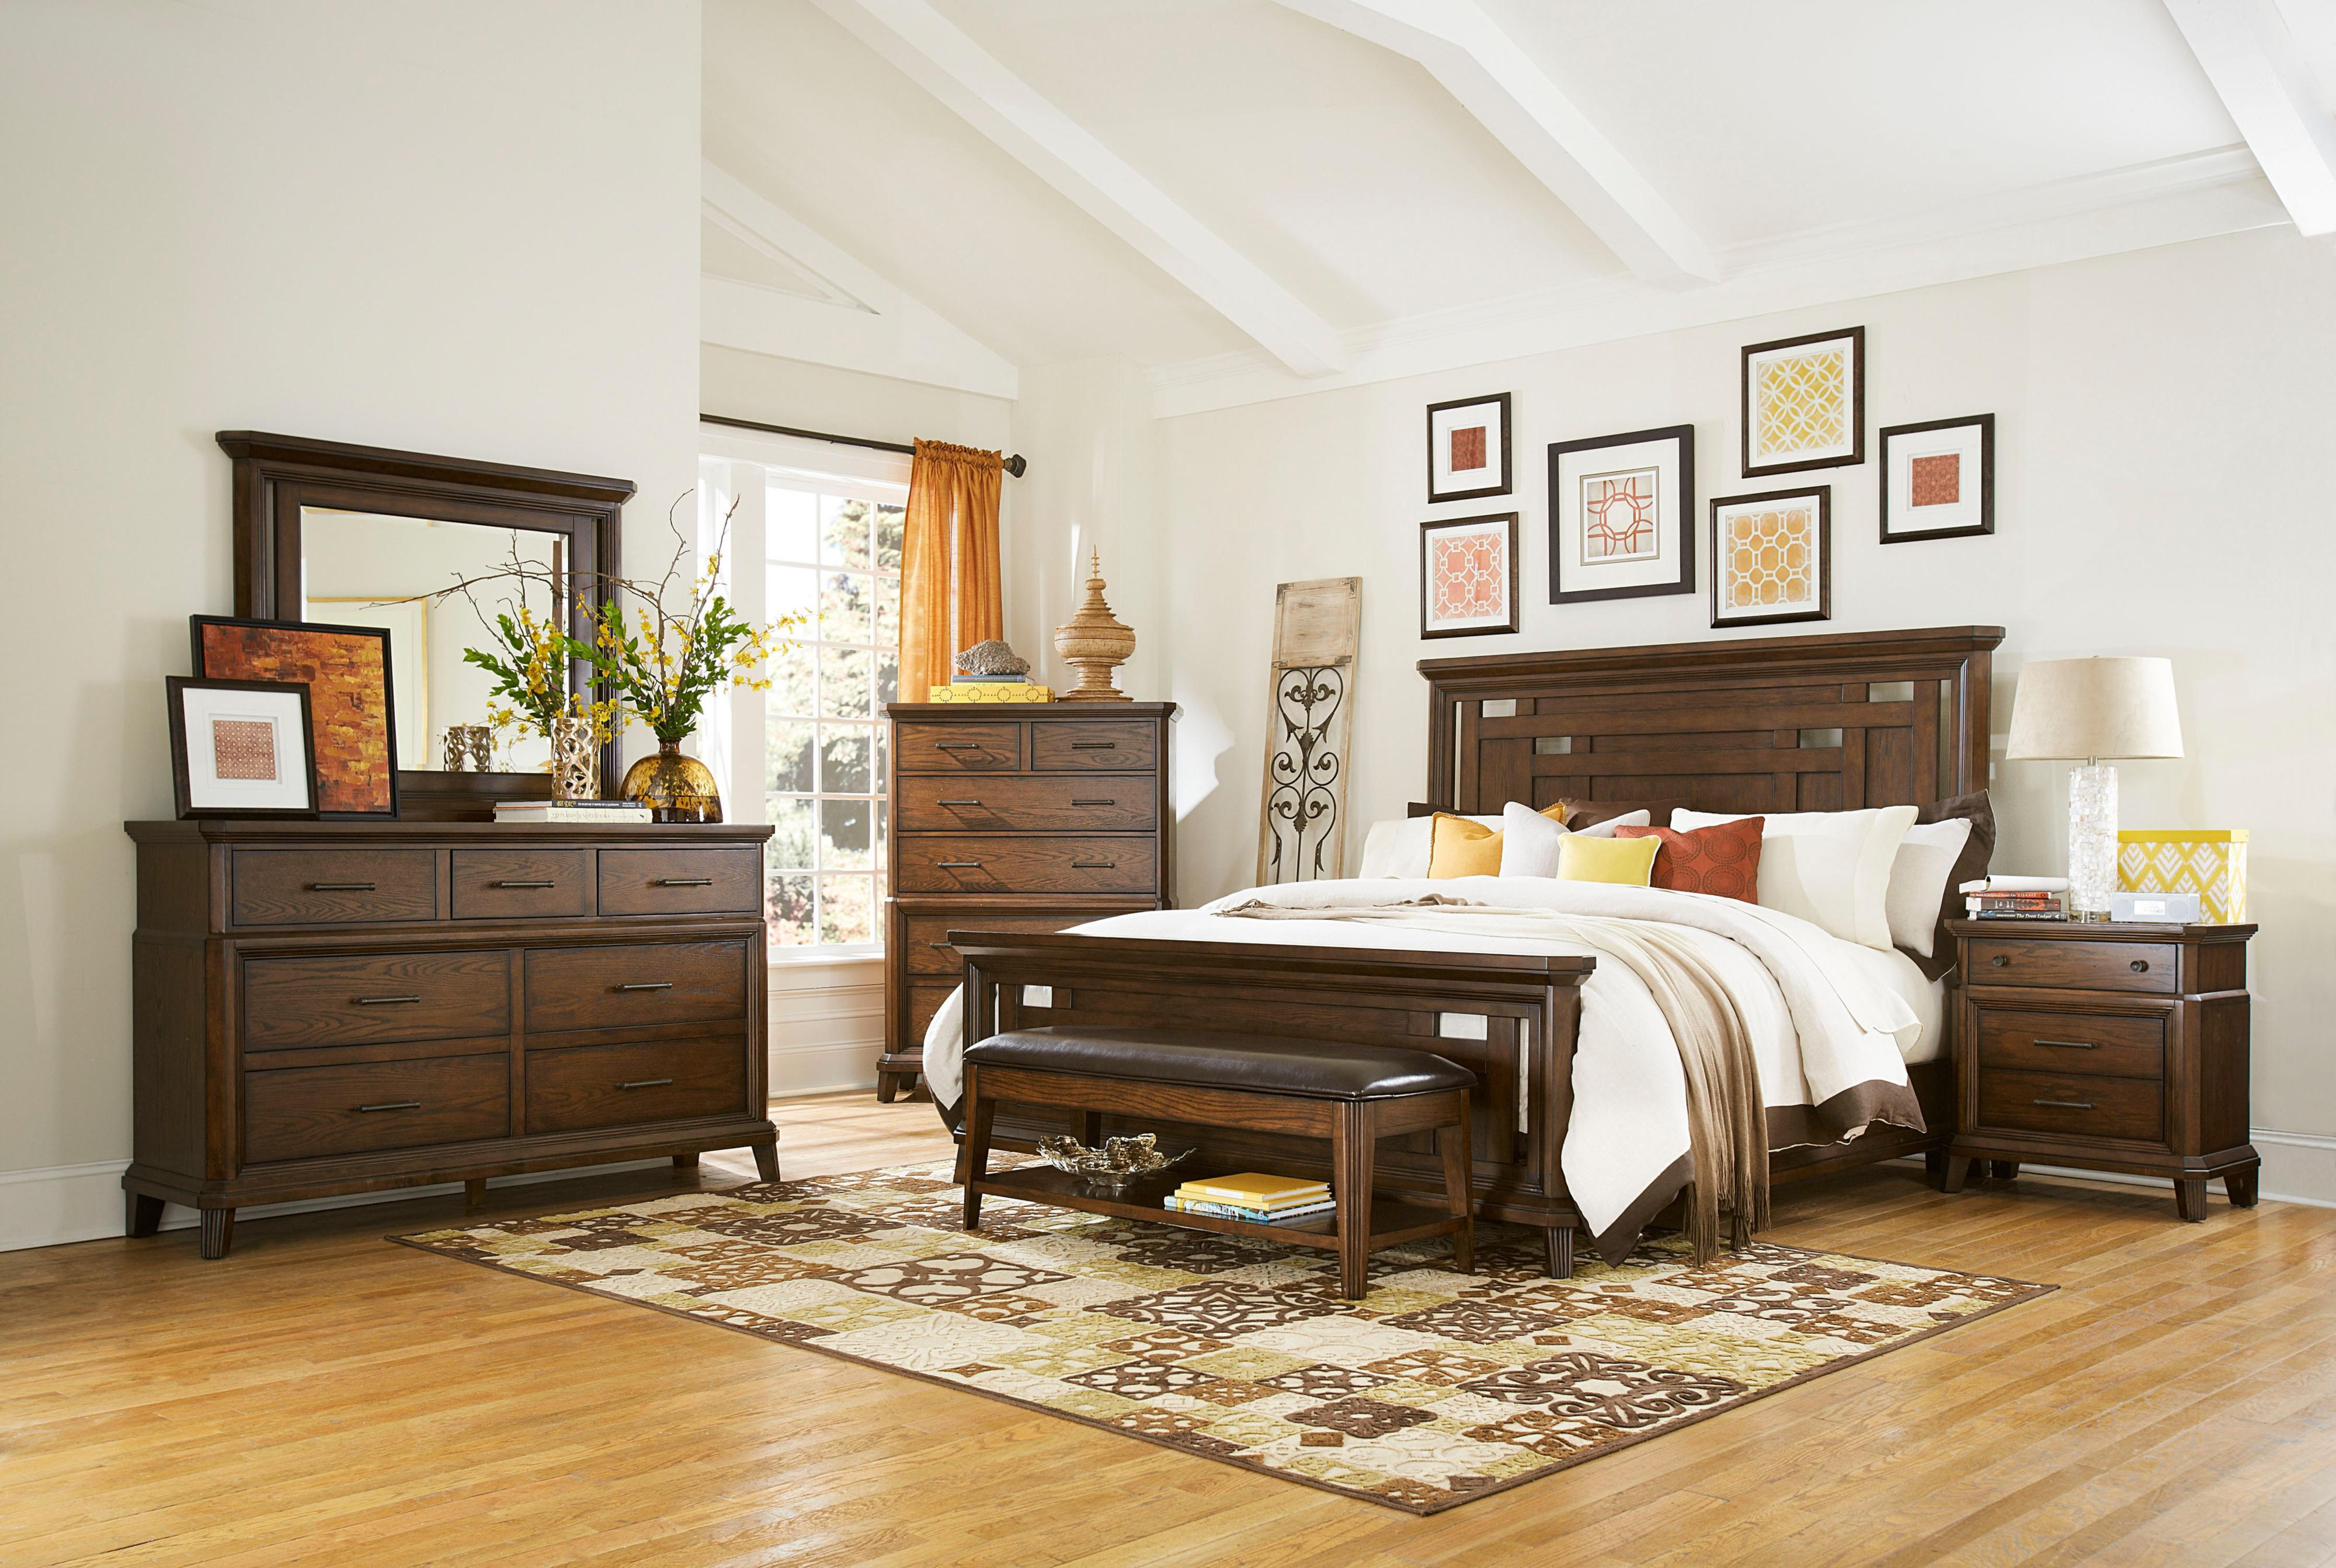 Image of: Broyhill Bedroom Furniture White